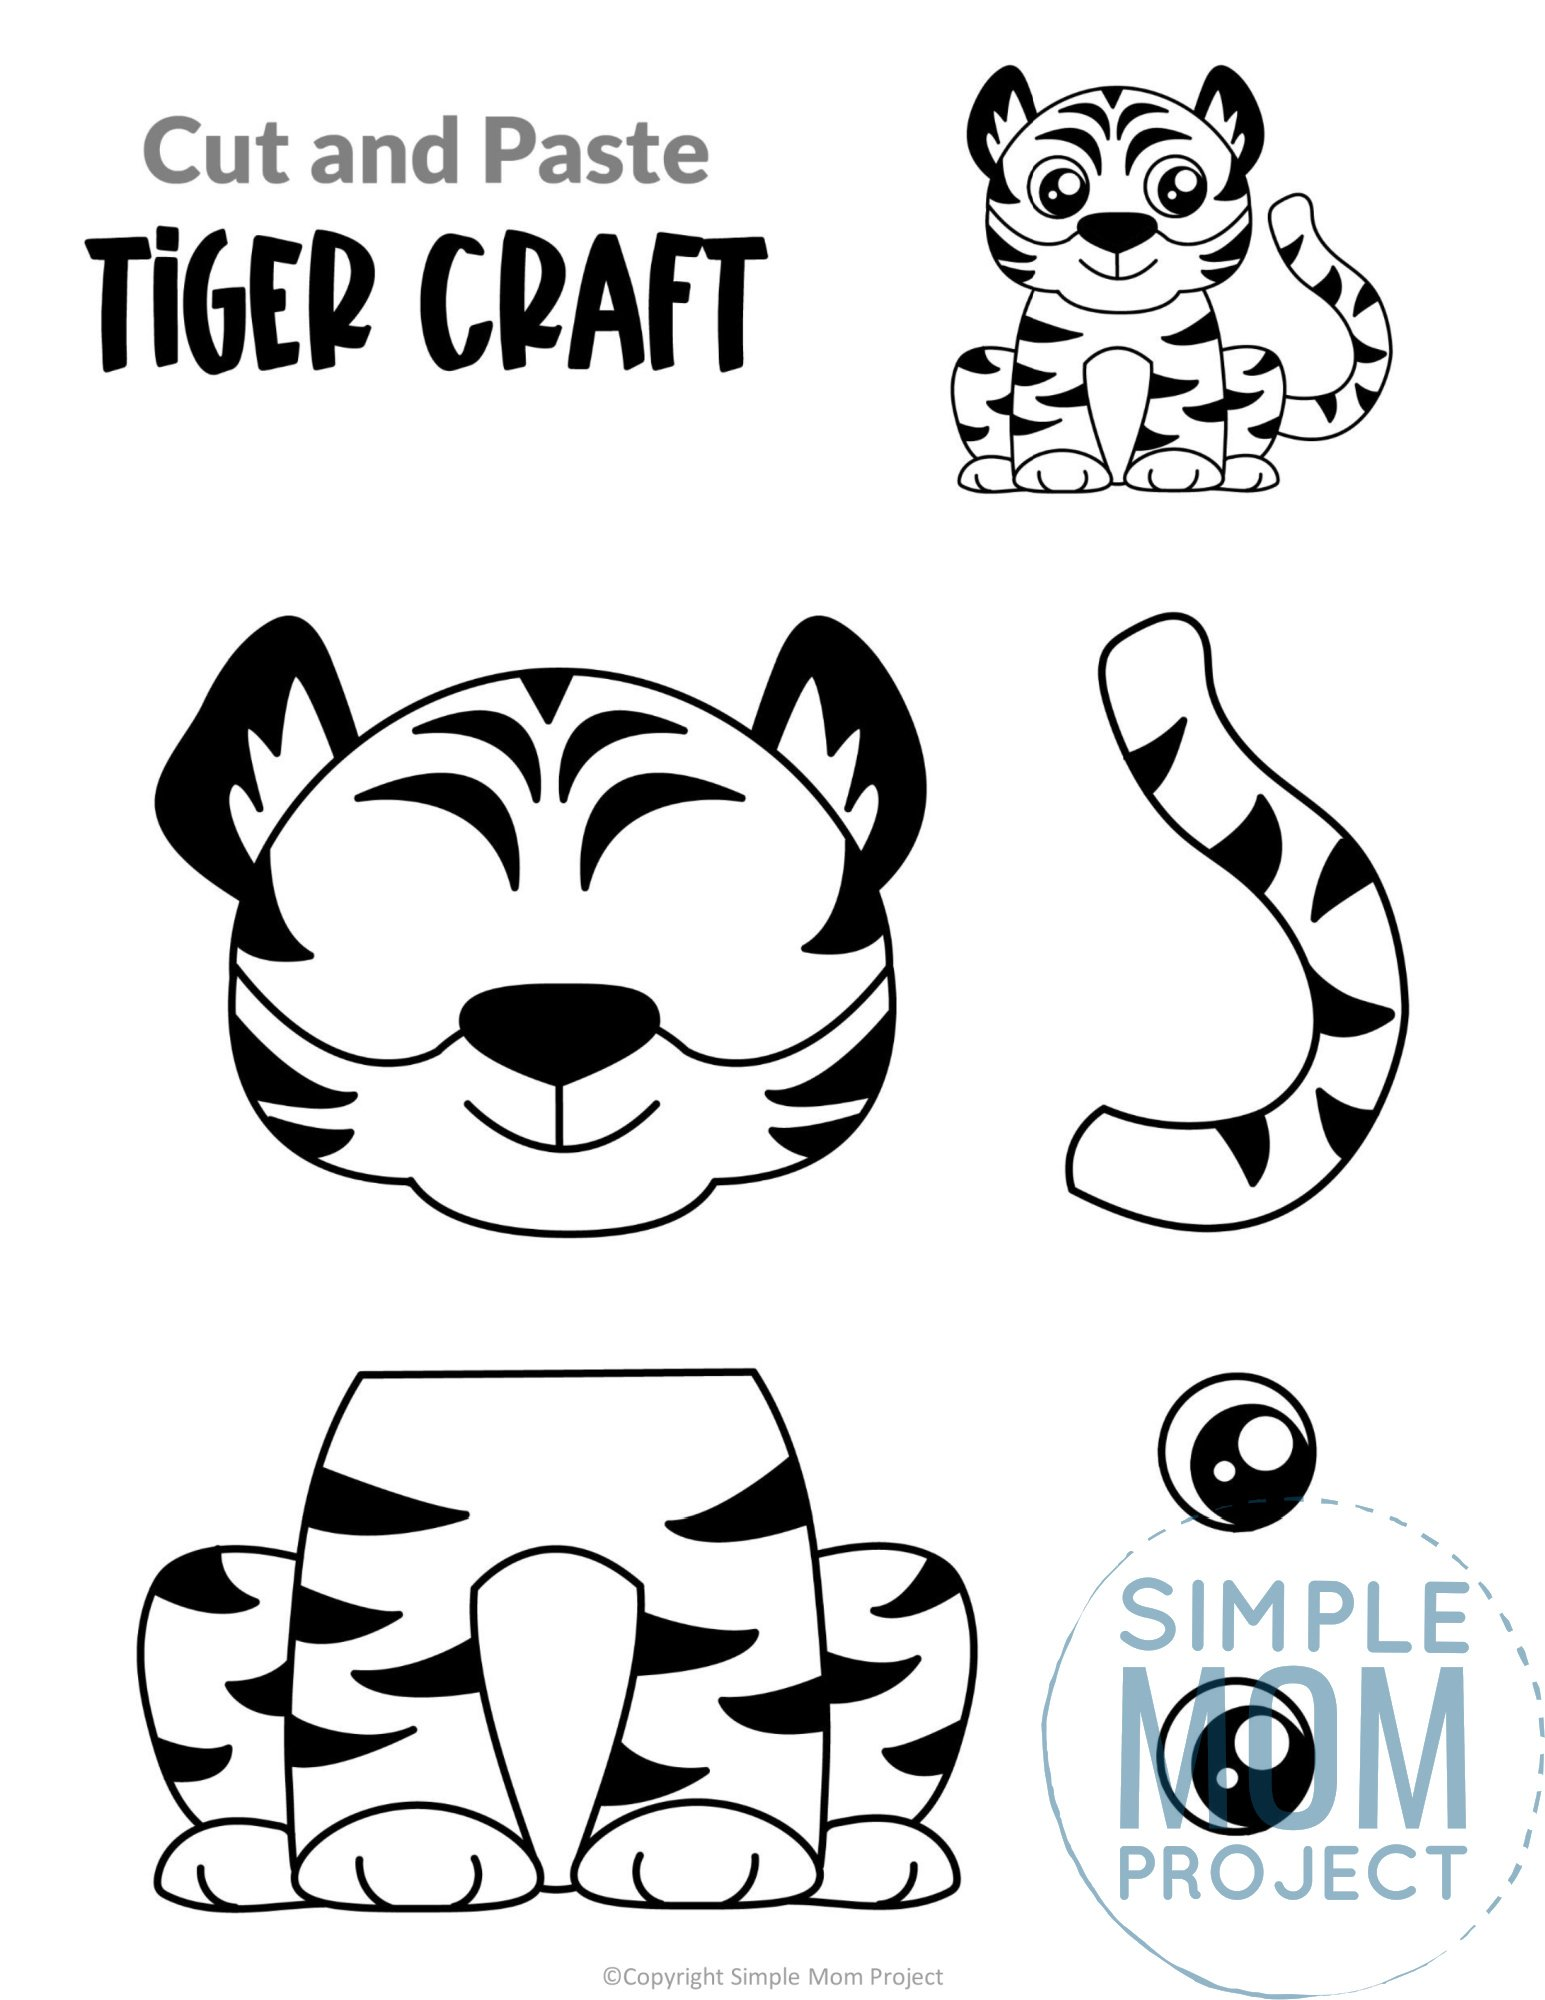 Tiger Cut and Paste Craft for Toddlers, Preschoolers and Kindergarteners